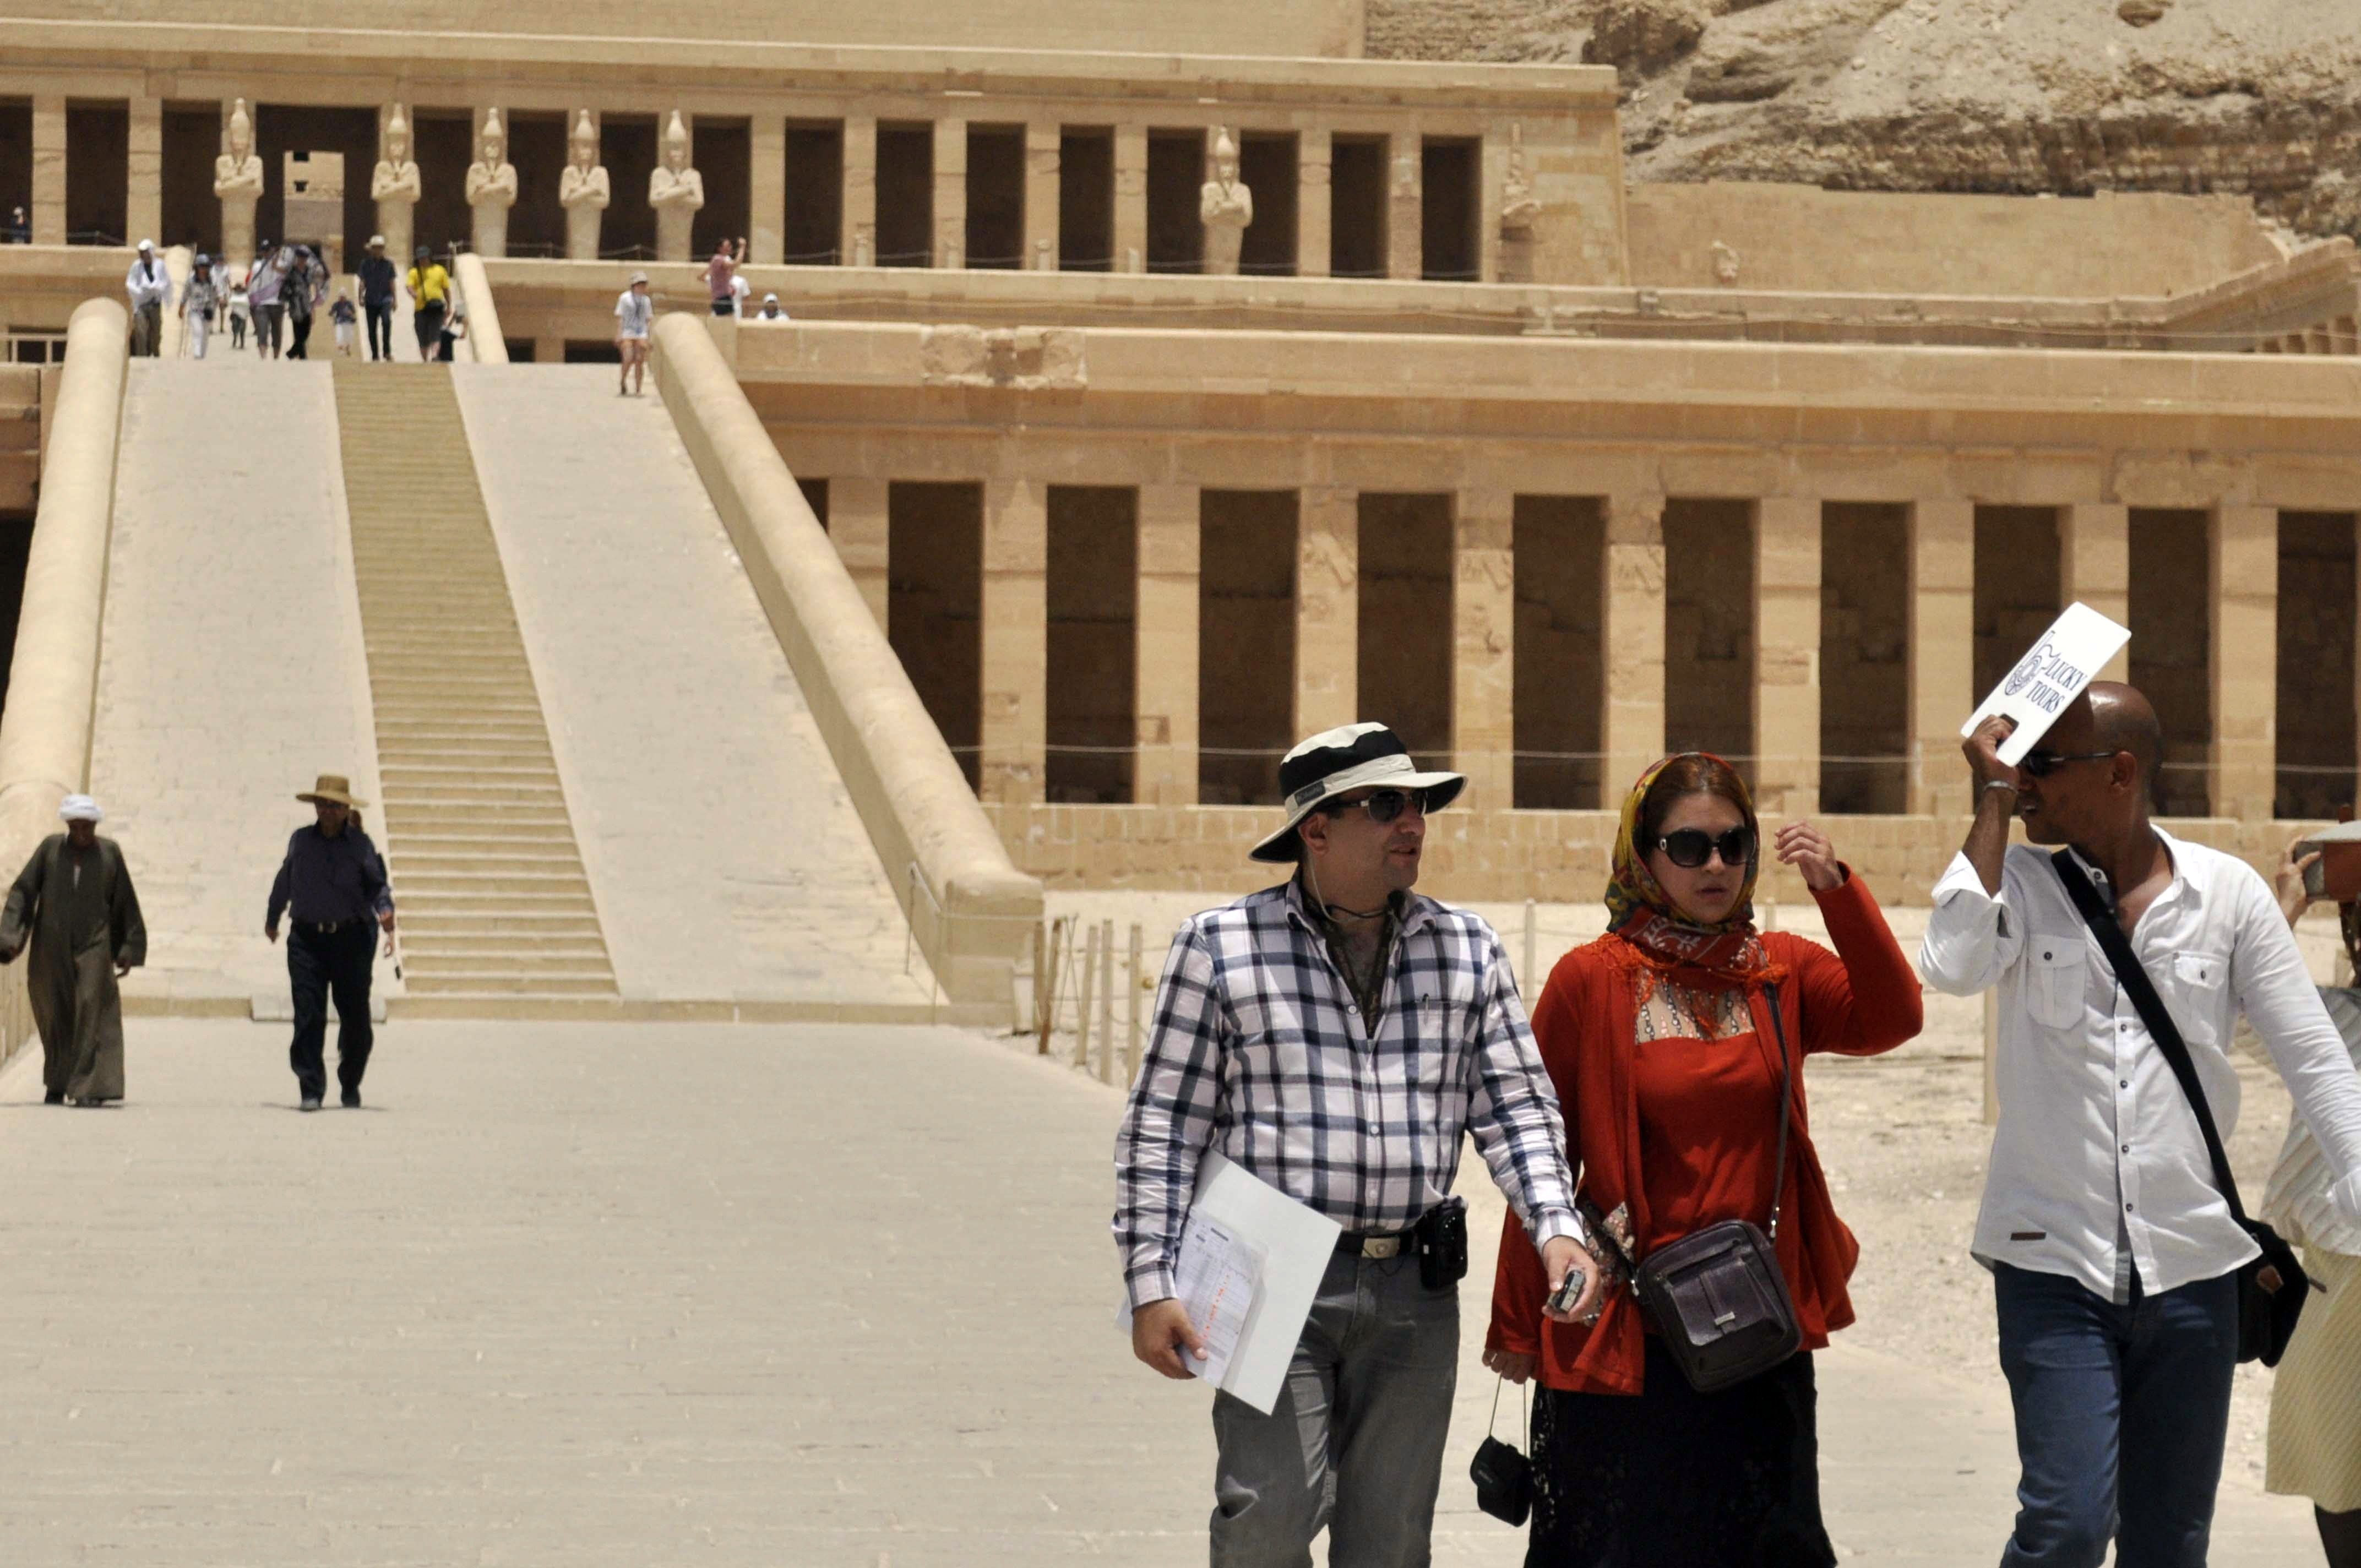 Iranian tourists visit the Temple of Hatshepsut in Luxor on June 3, 2013, during the second visit by Iranian tourists to Egypt in over thirty years. (AFP Photo)